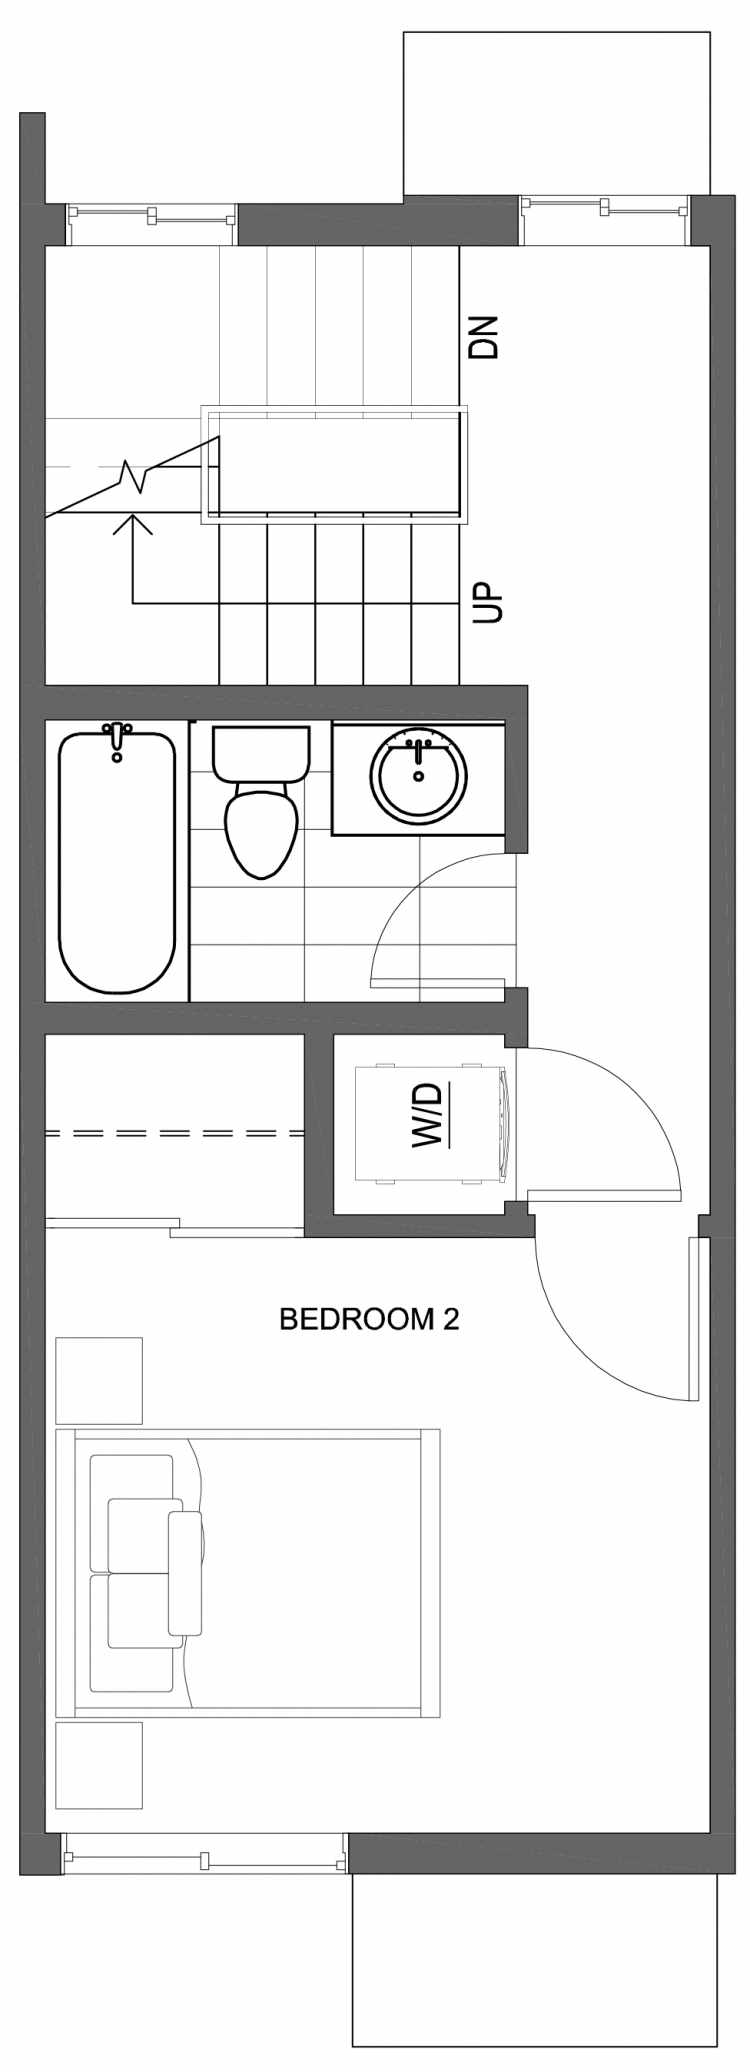 Second Floor Plan of 10427 Alderbrook Pl NW, One of the Zinnia Townhomes in the Greenwood Neighborhood of Seattle